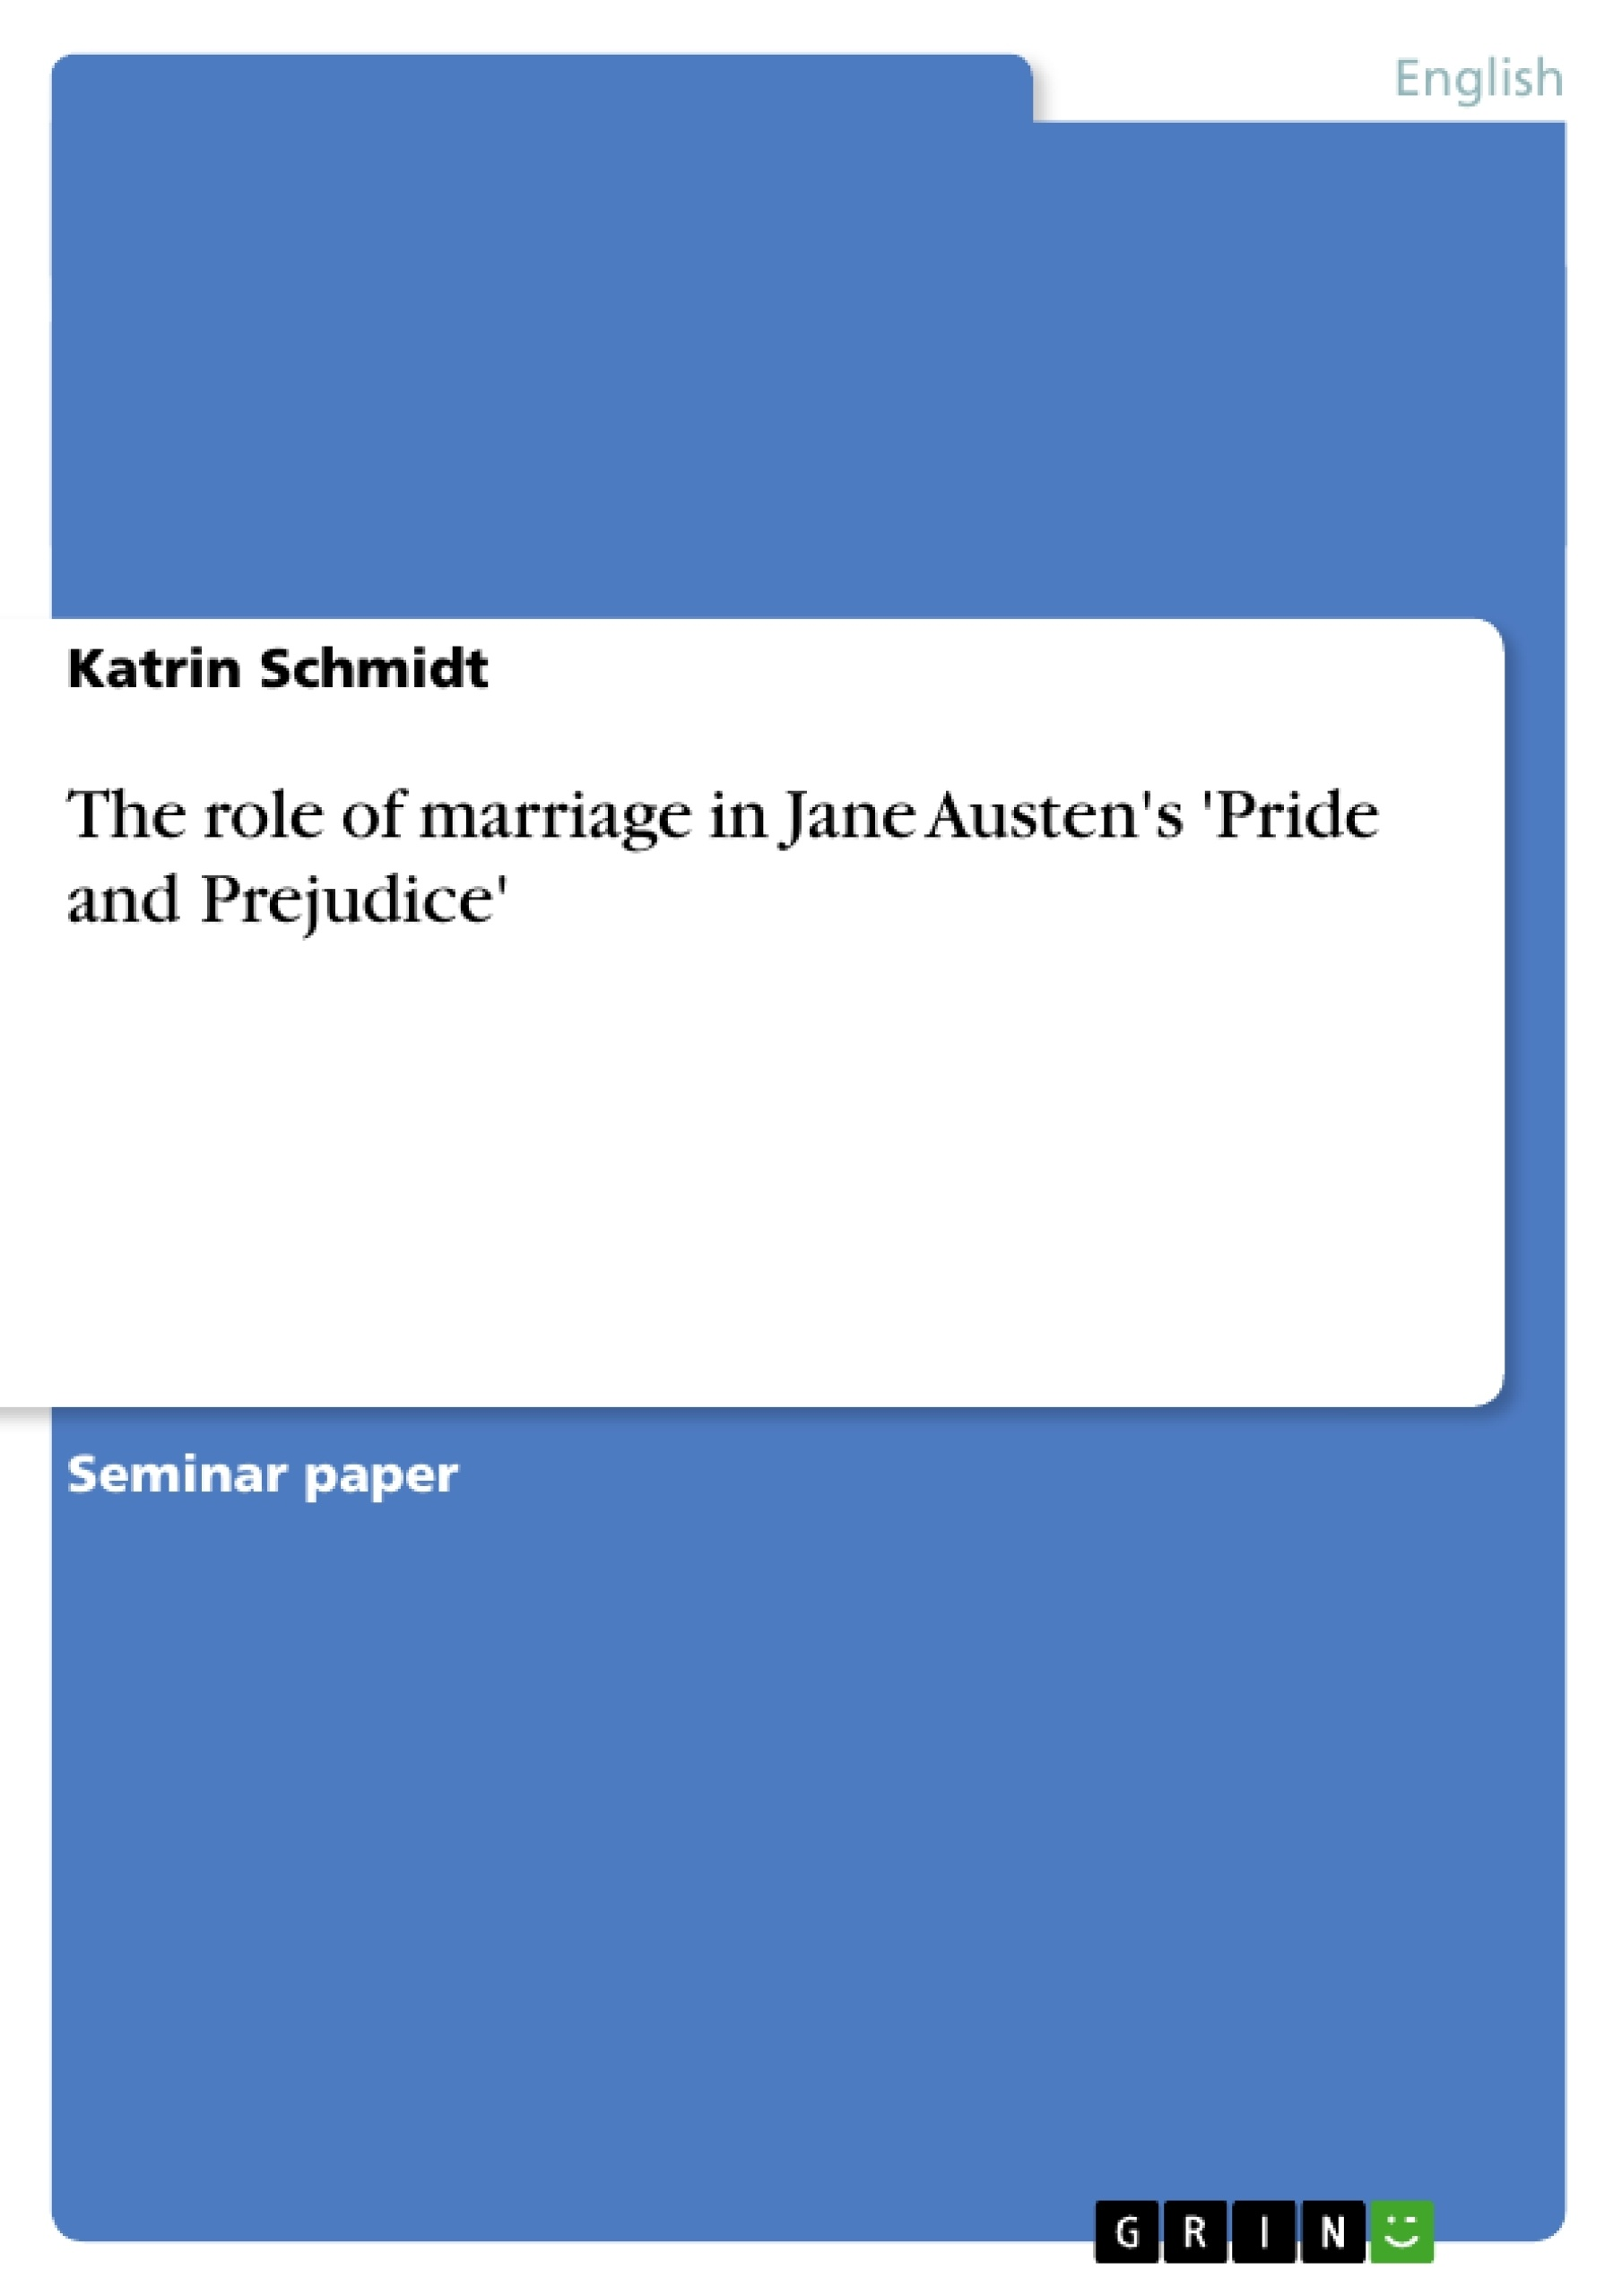 an analysis of marriage in pride and prejudice by jane austen Pride and prejudice jane austen buy share  nature stems from his wounding her own pride analysis  view of marriage is one of a mismatched couple that cannot .